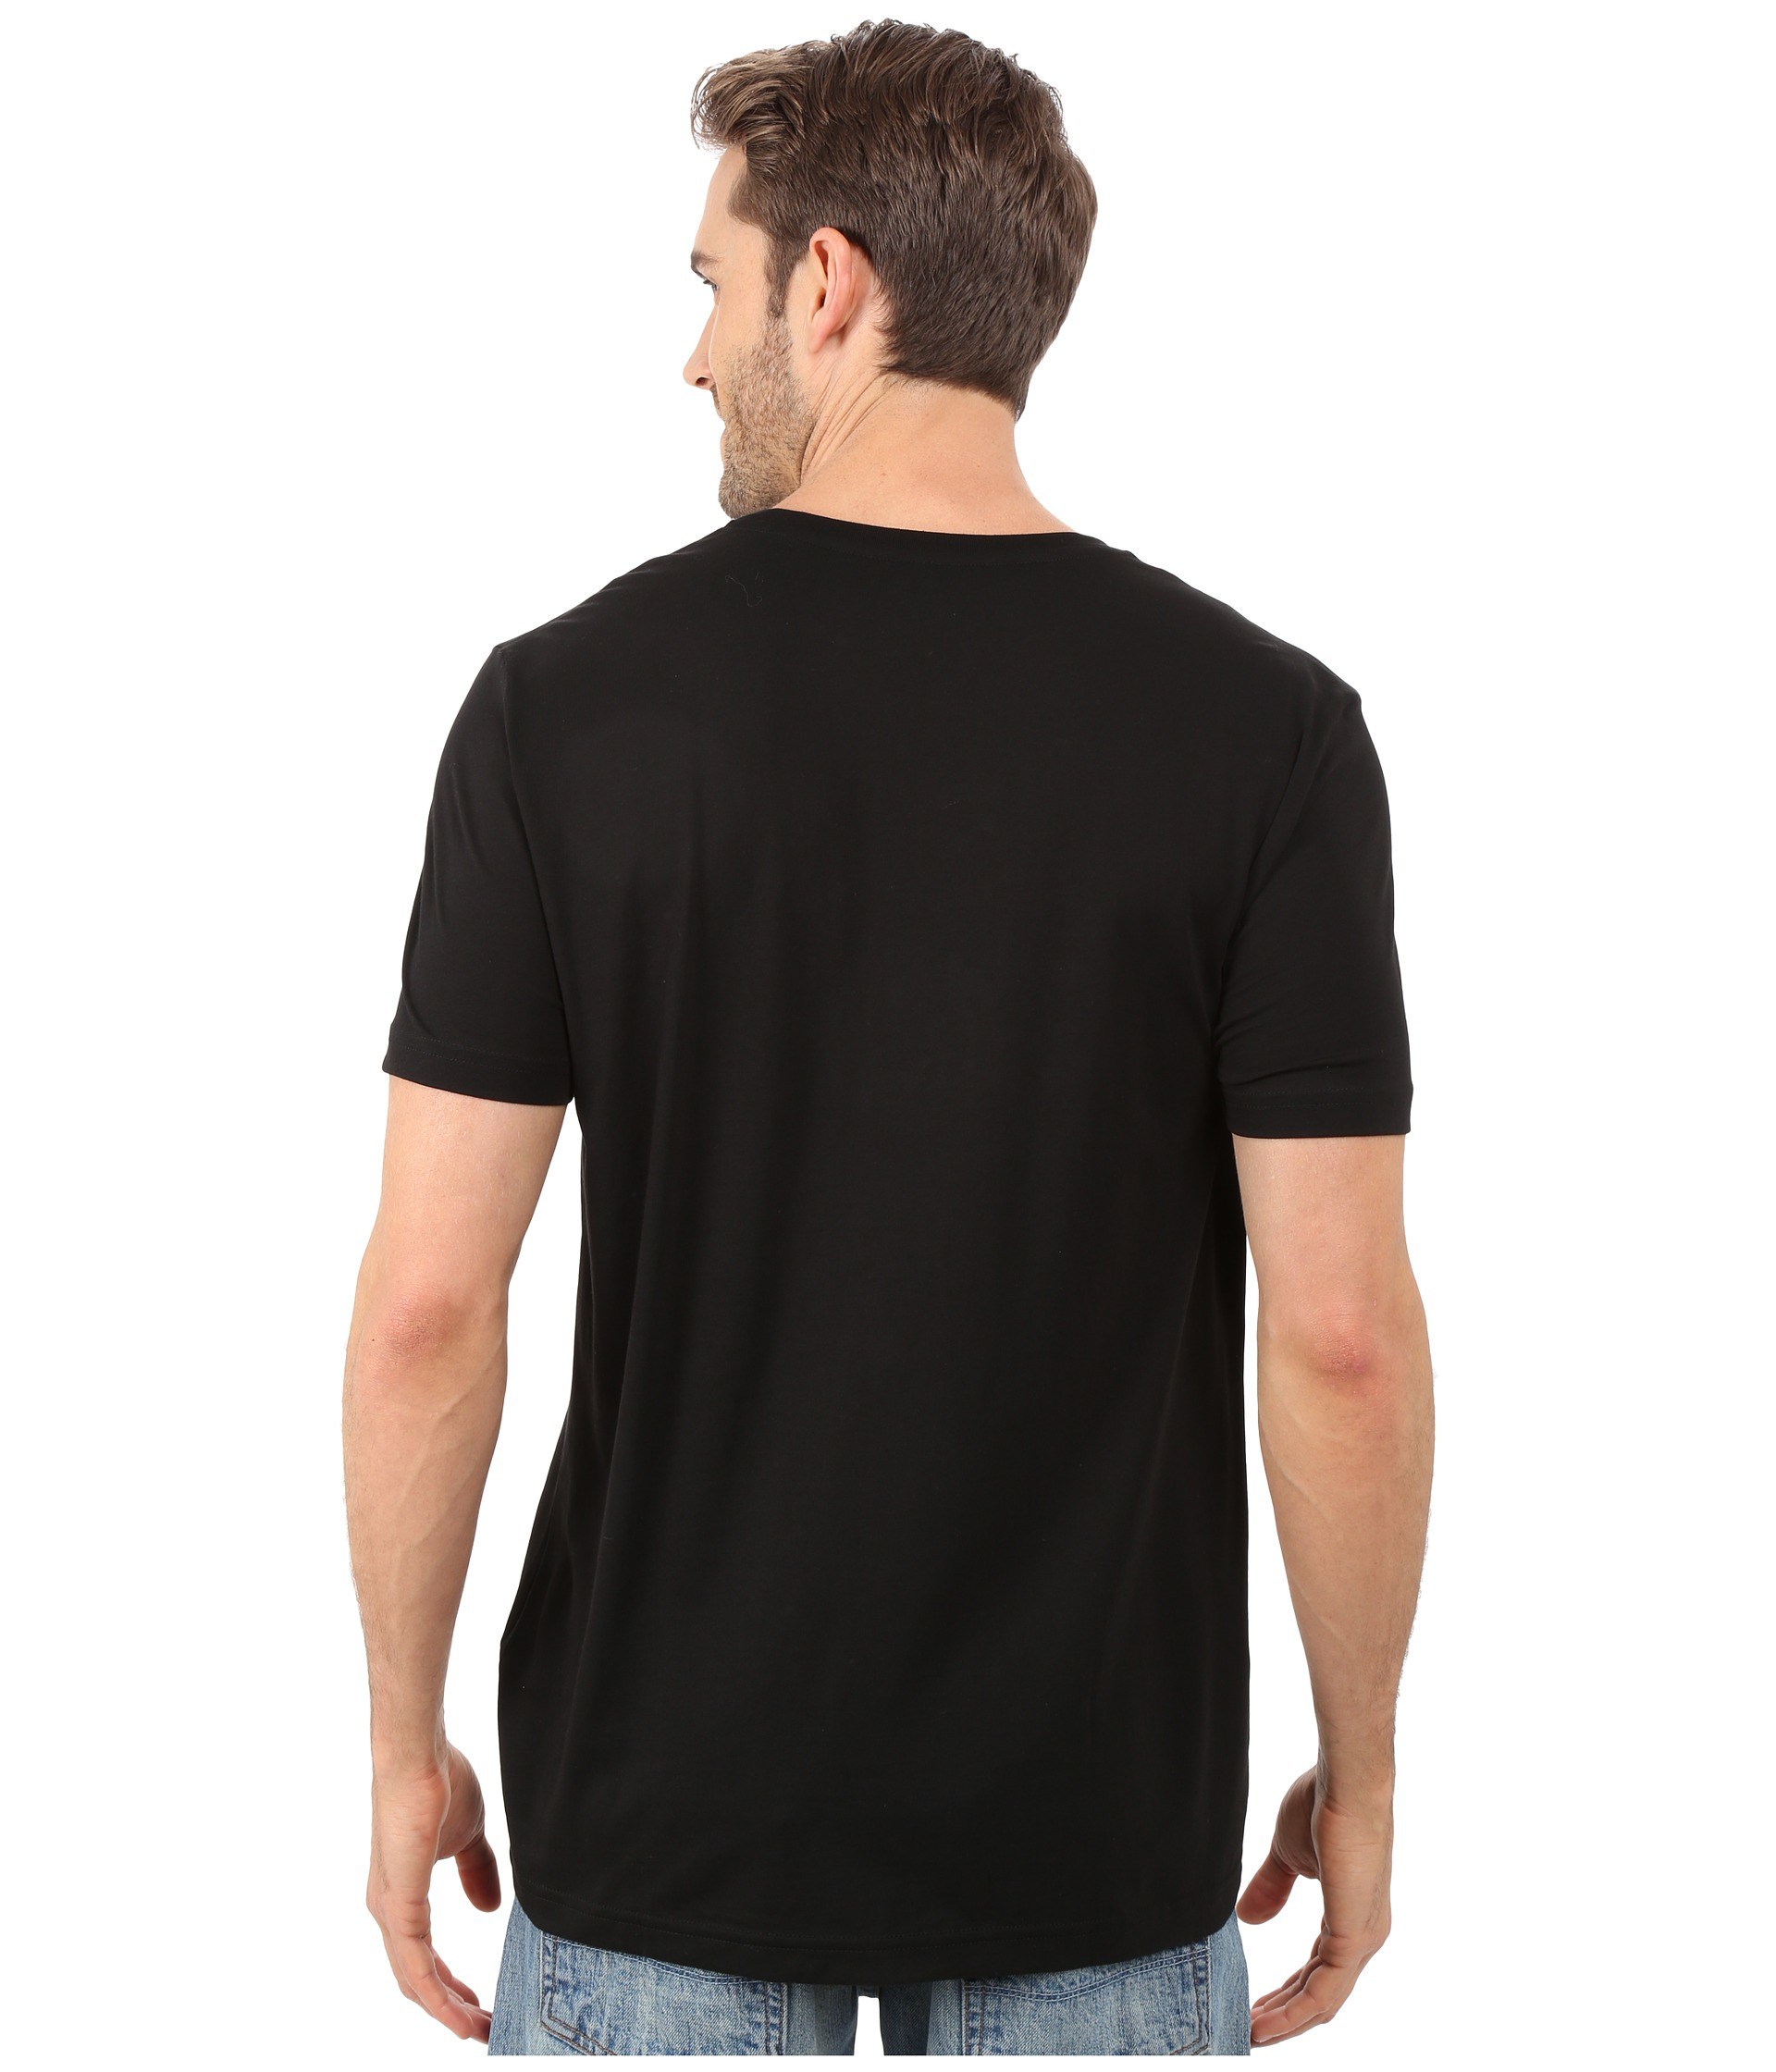 black t shirt model back - photo #1